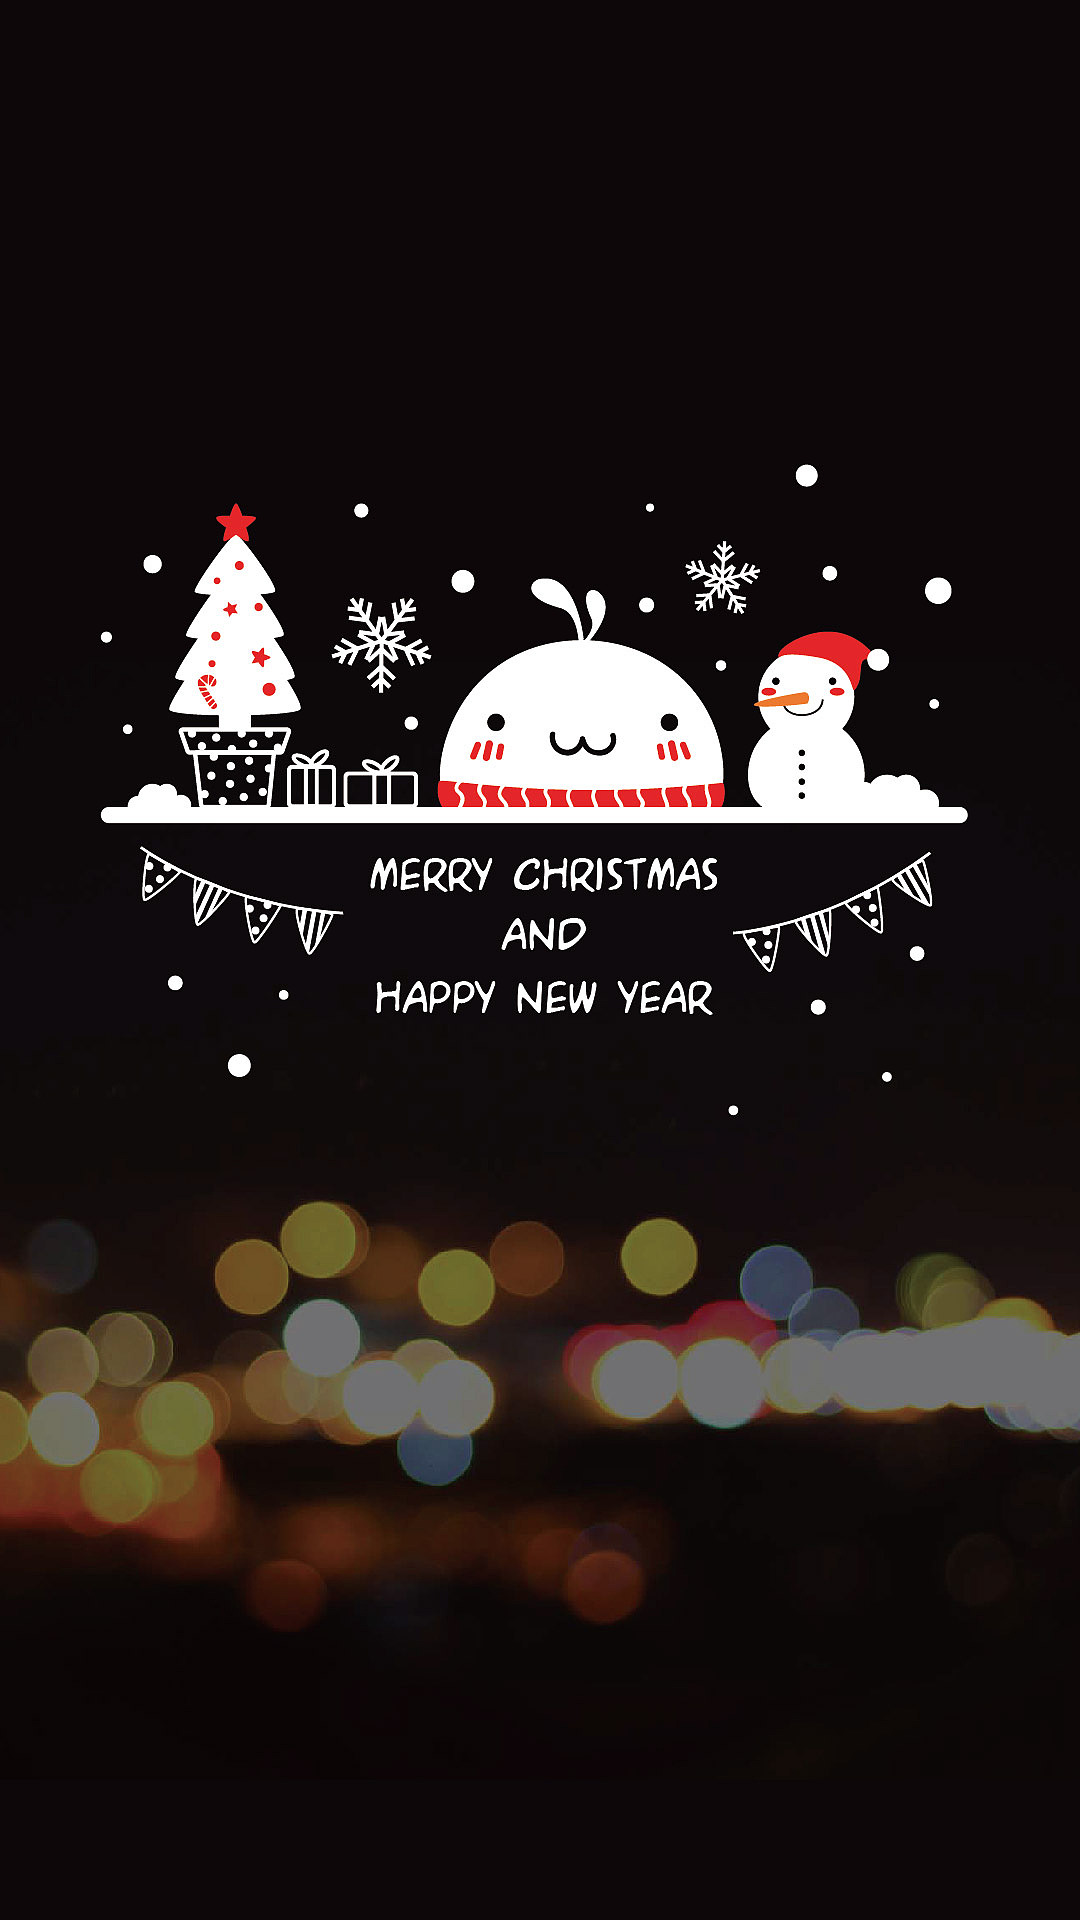 merry christmas and happy new year 苹果手机高清壁纸 1080x1920 爱思助手